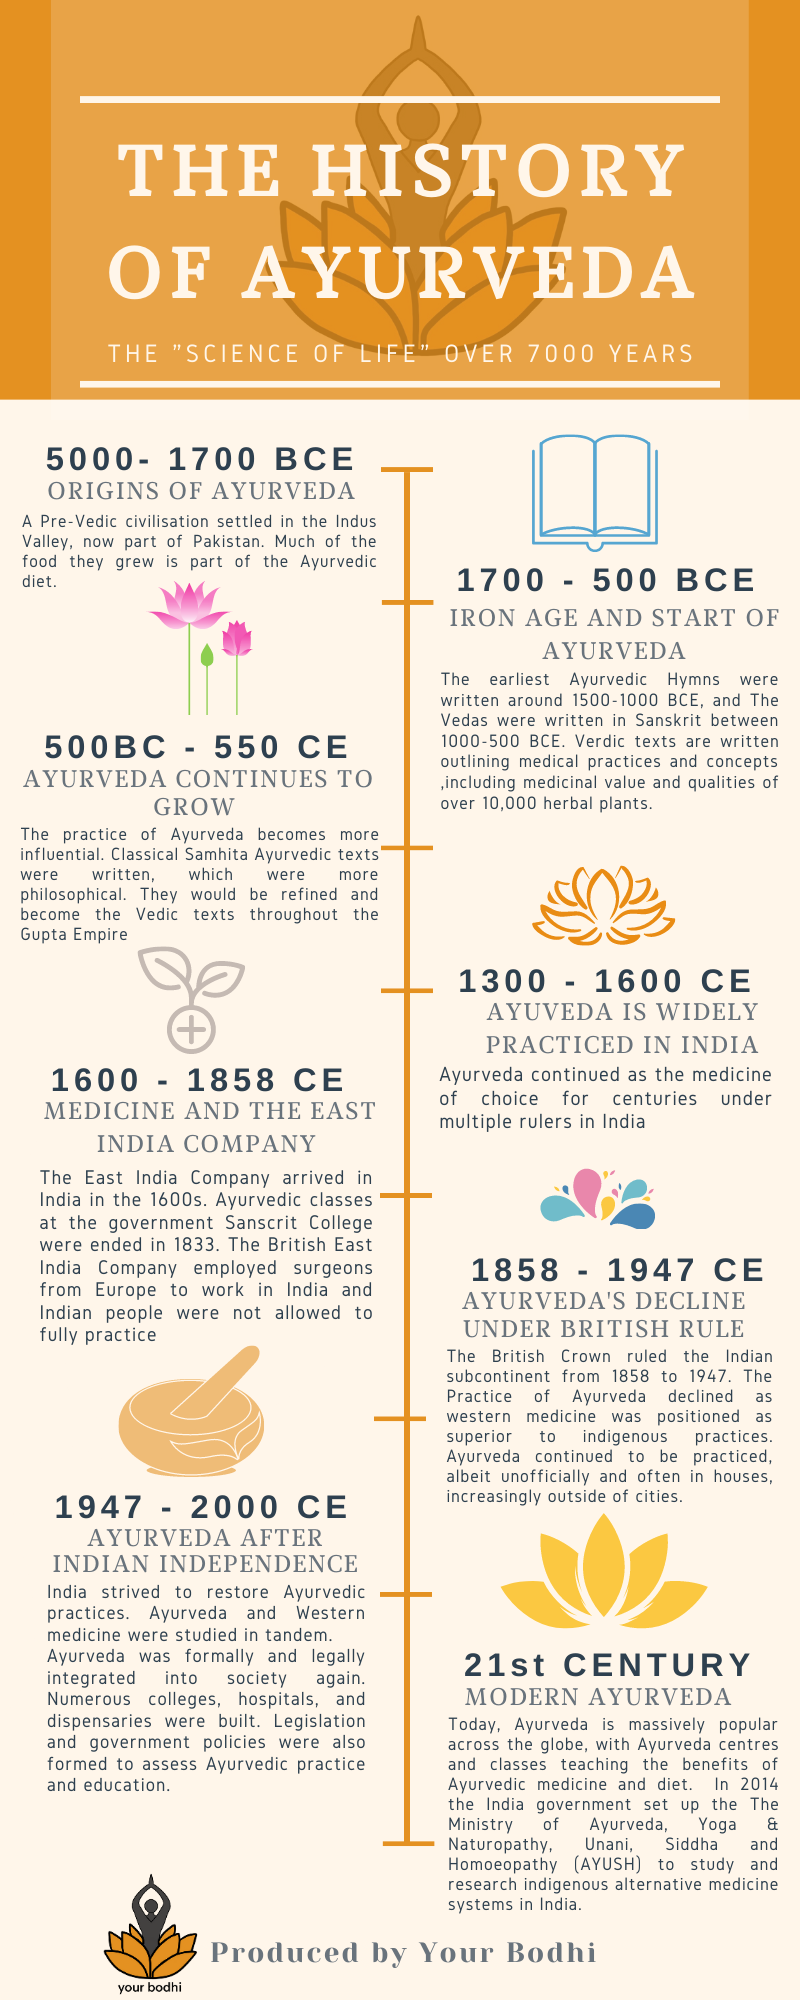 Timeline of history of Ayurveda